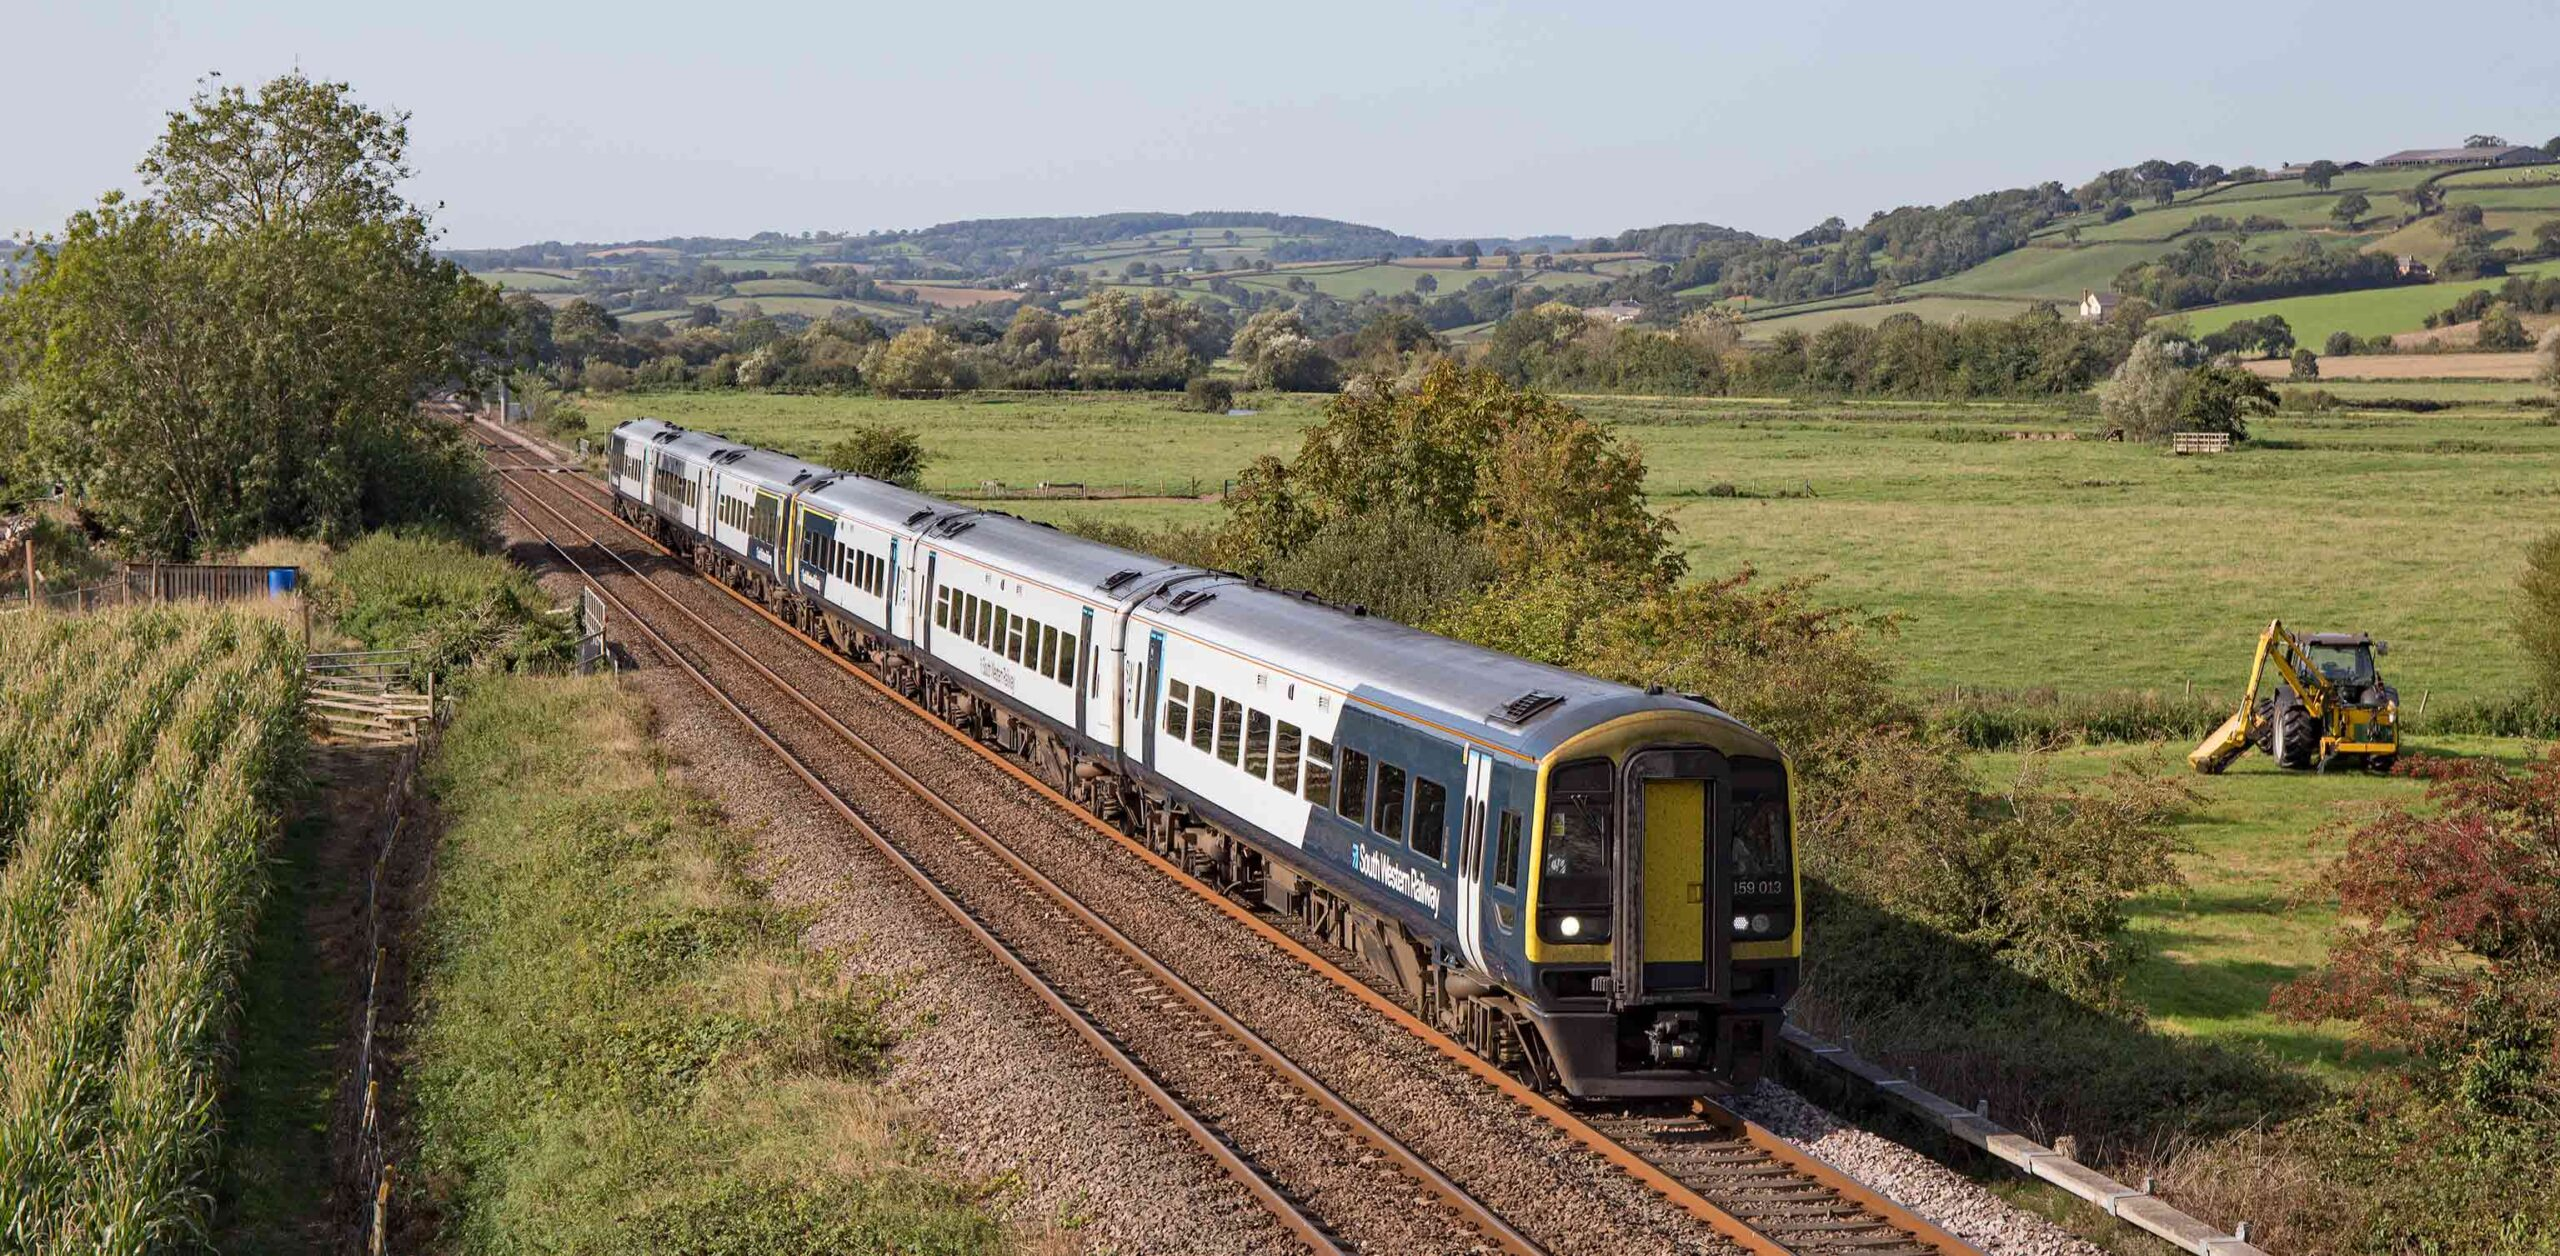 East Devon Line train in landscape